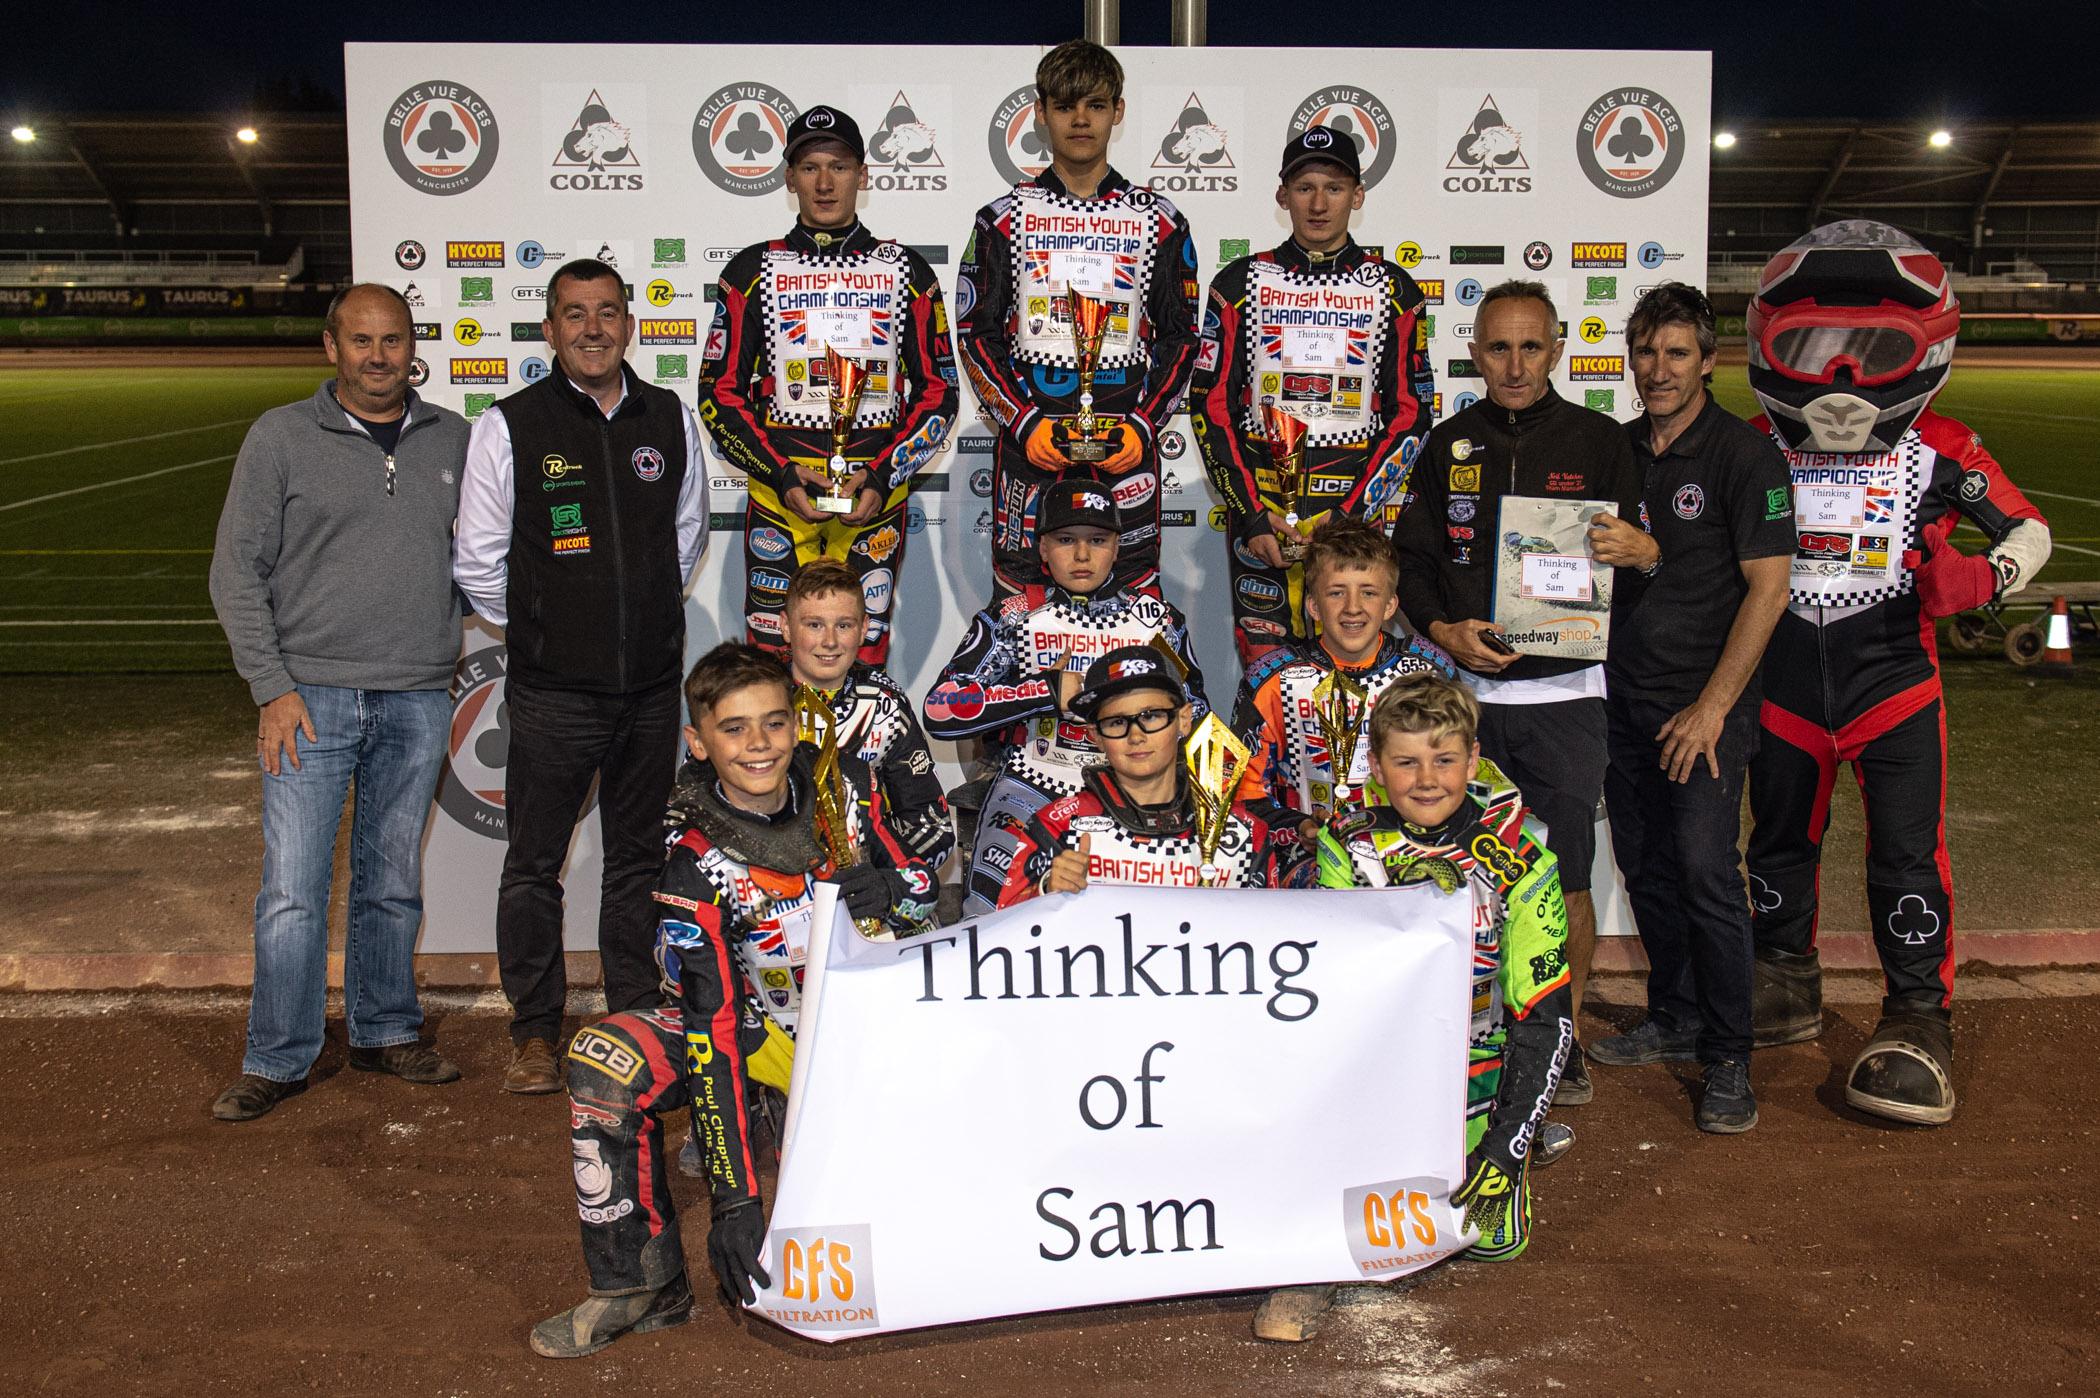 The final podium of the night with the top three of the 125/150cc, 250cc and 500cc categories